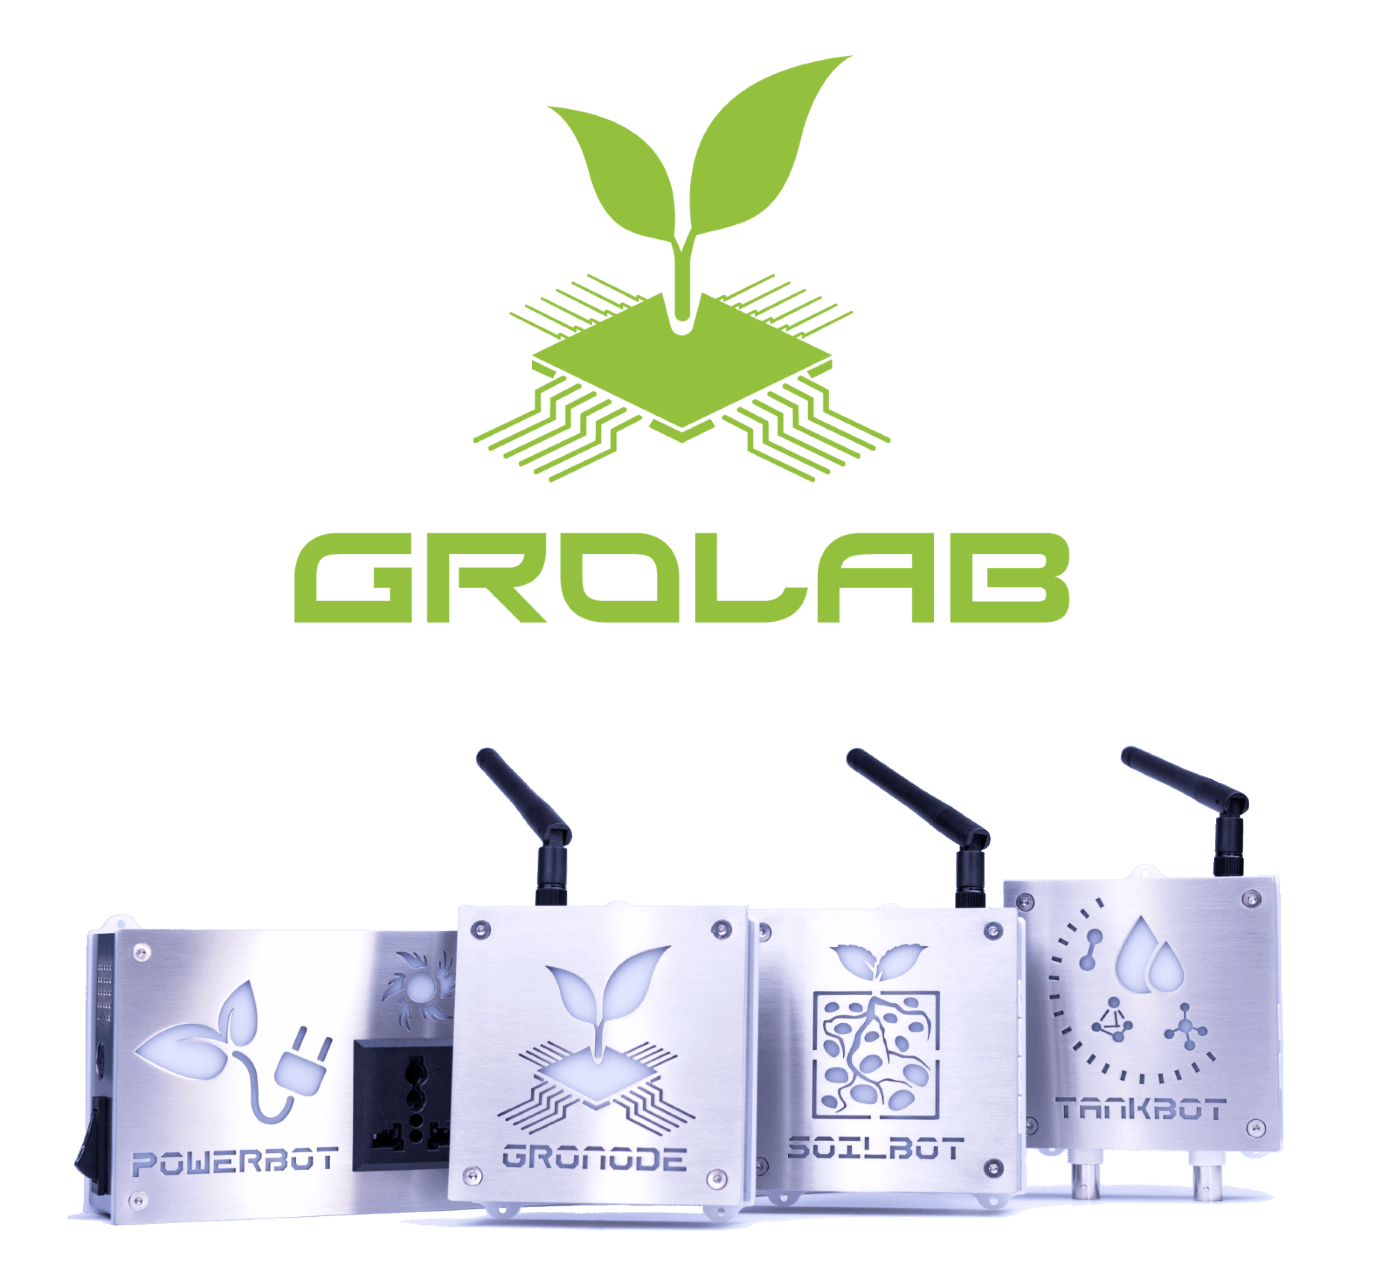 GroLab™ the grow controller created by Open Grow™ - Featuring GroNode, PowerBot, TankBot and Soilbot